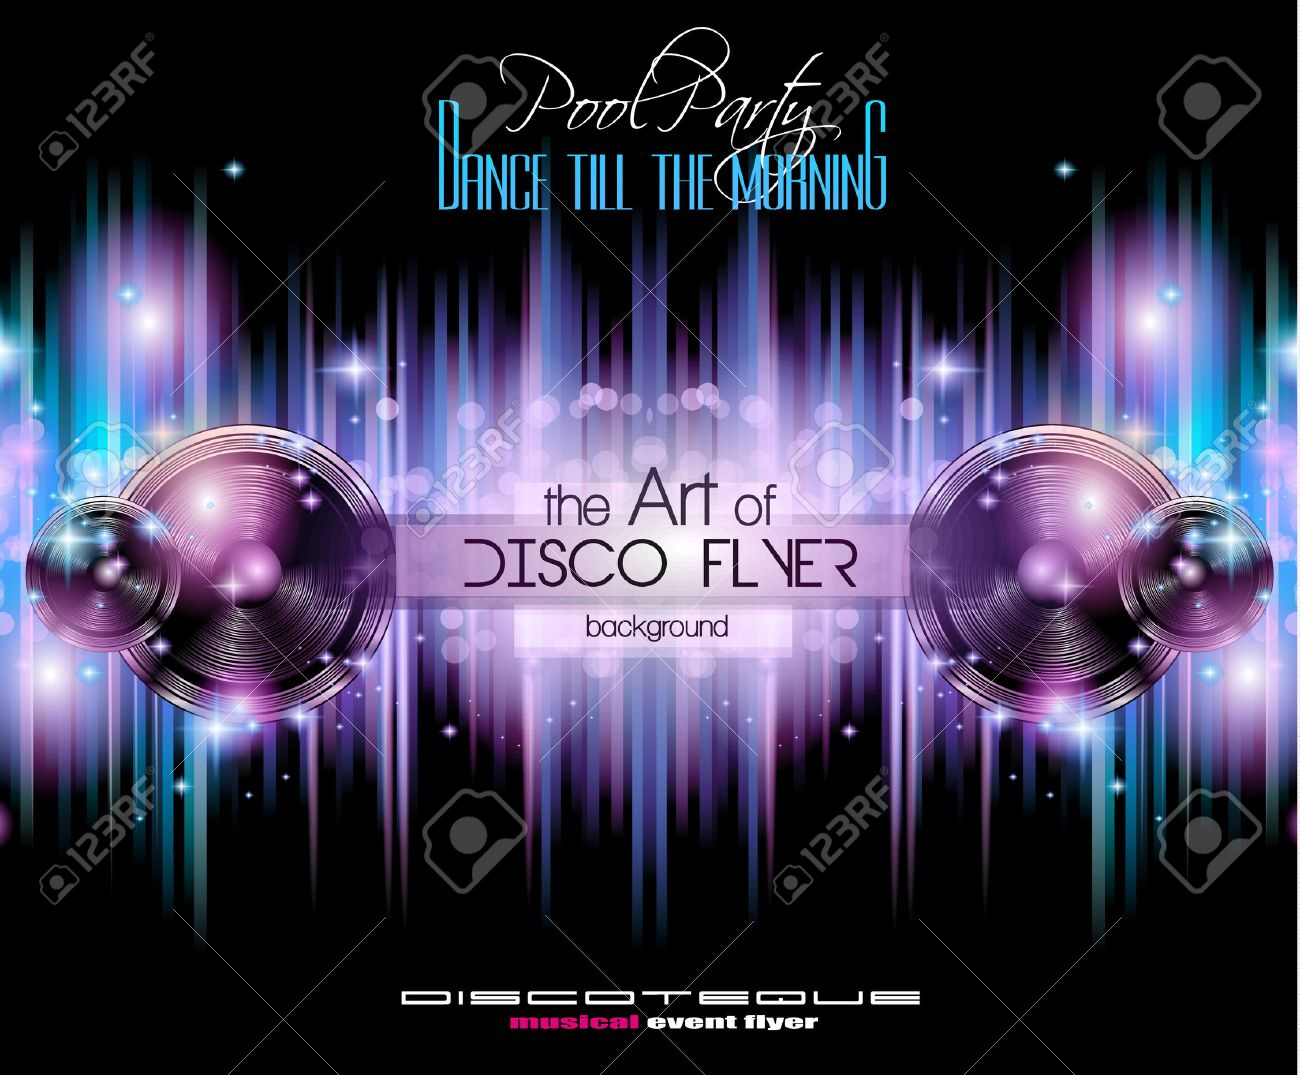 Disco Club Flyer Template For Your Music Nights Event. Ideal ...